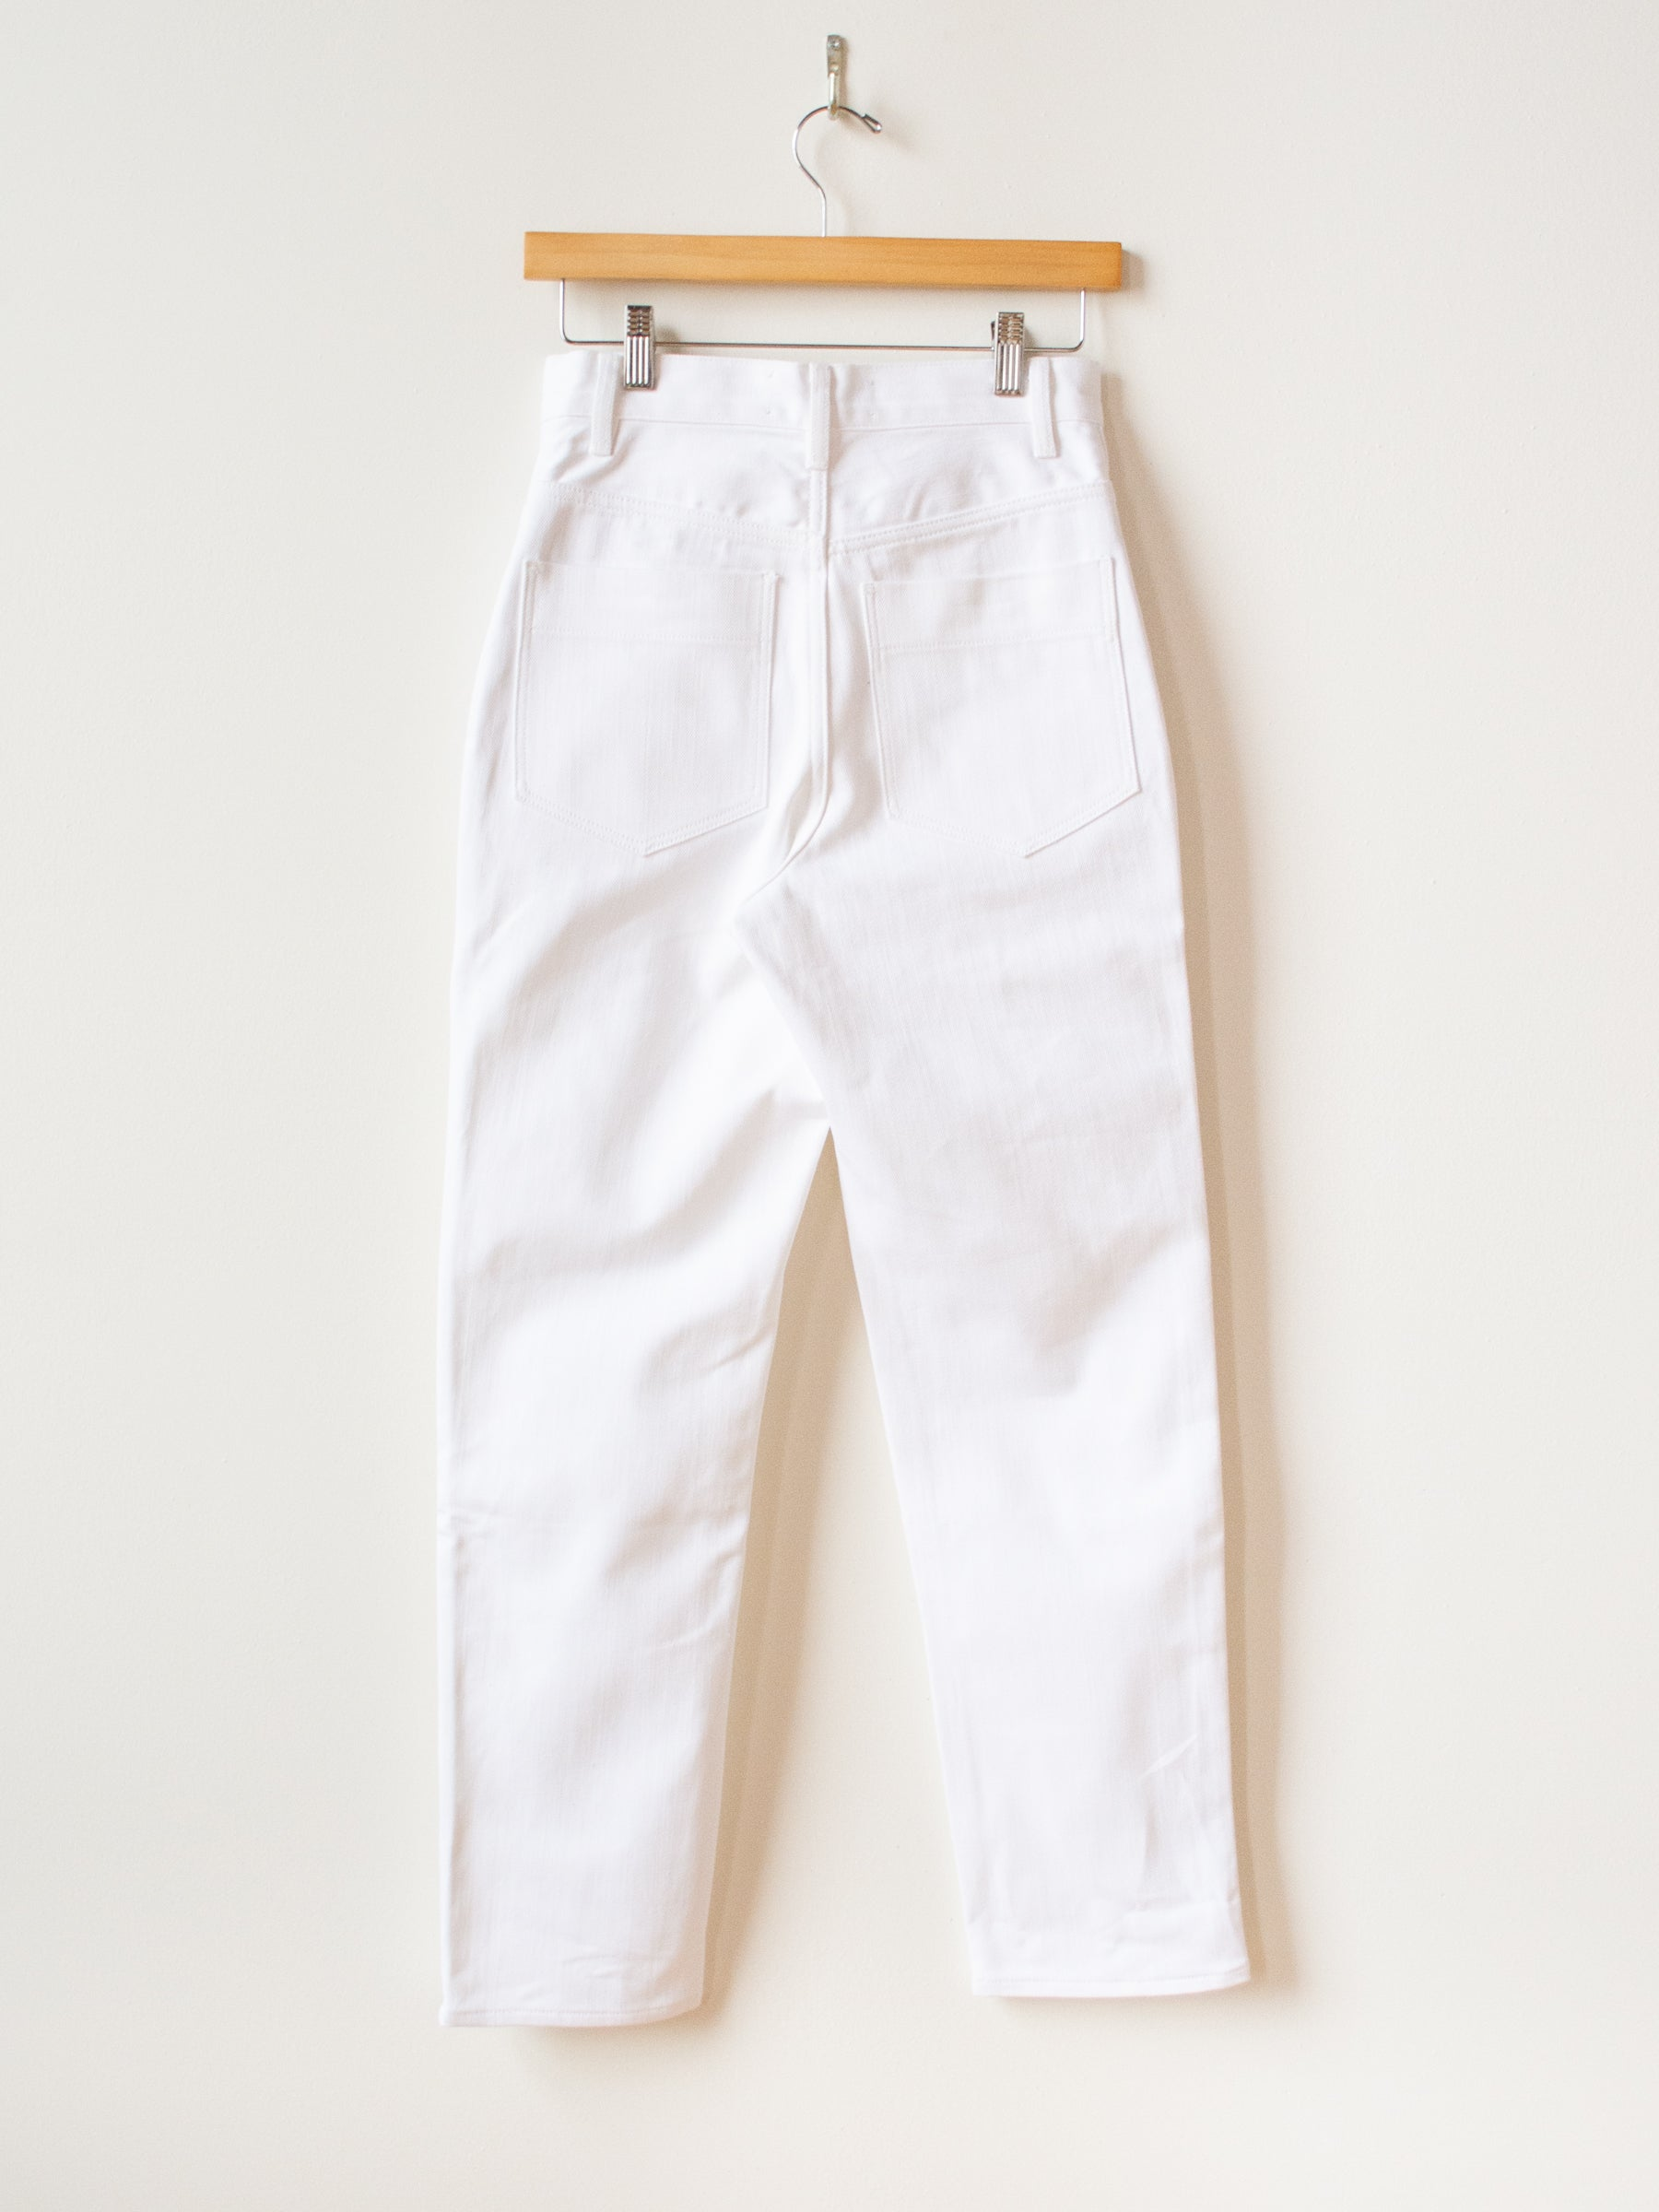 Avanti Selvedge Denim - Optic White